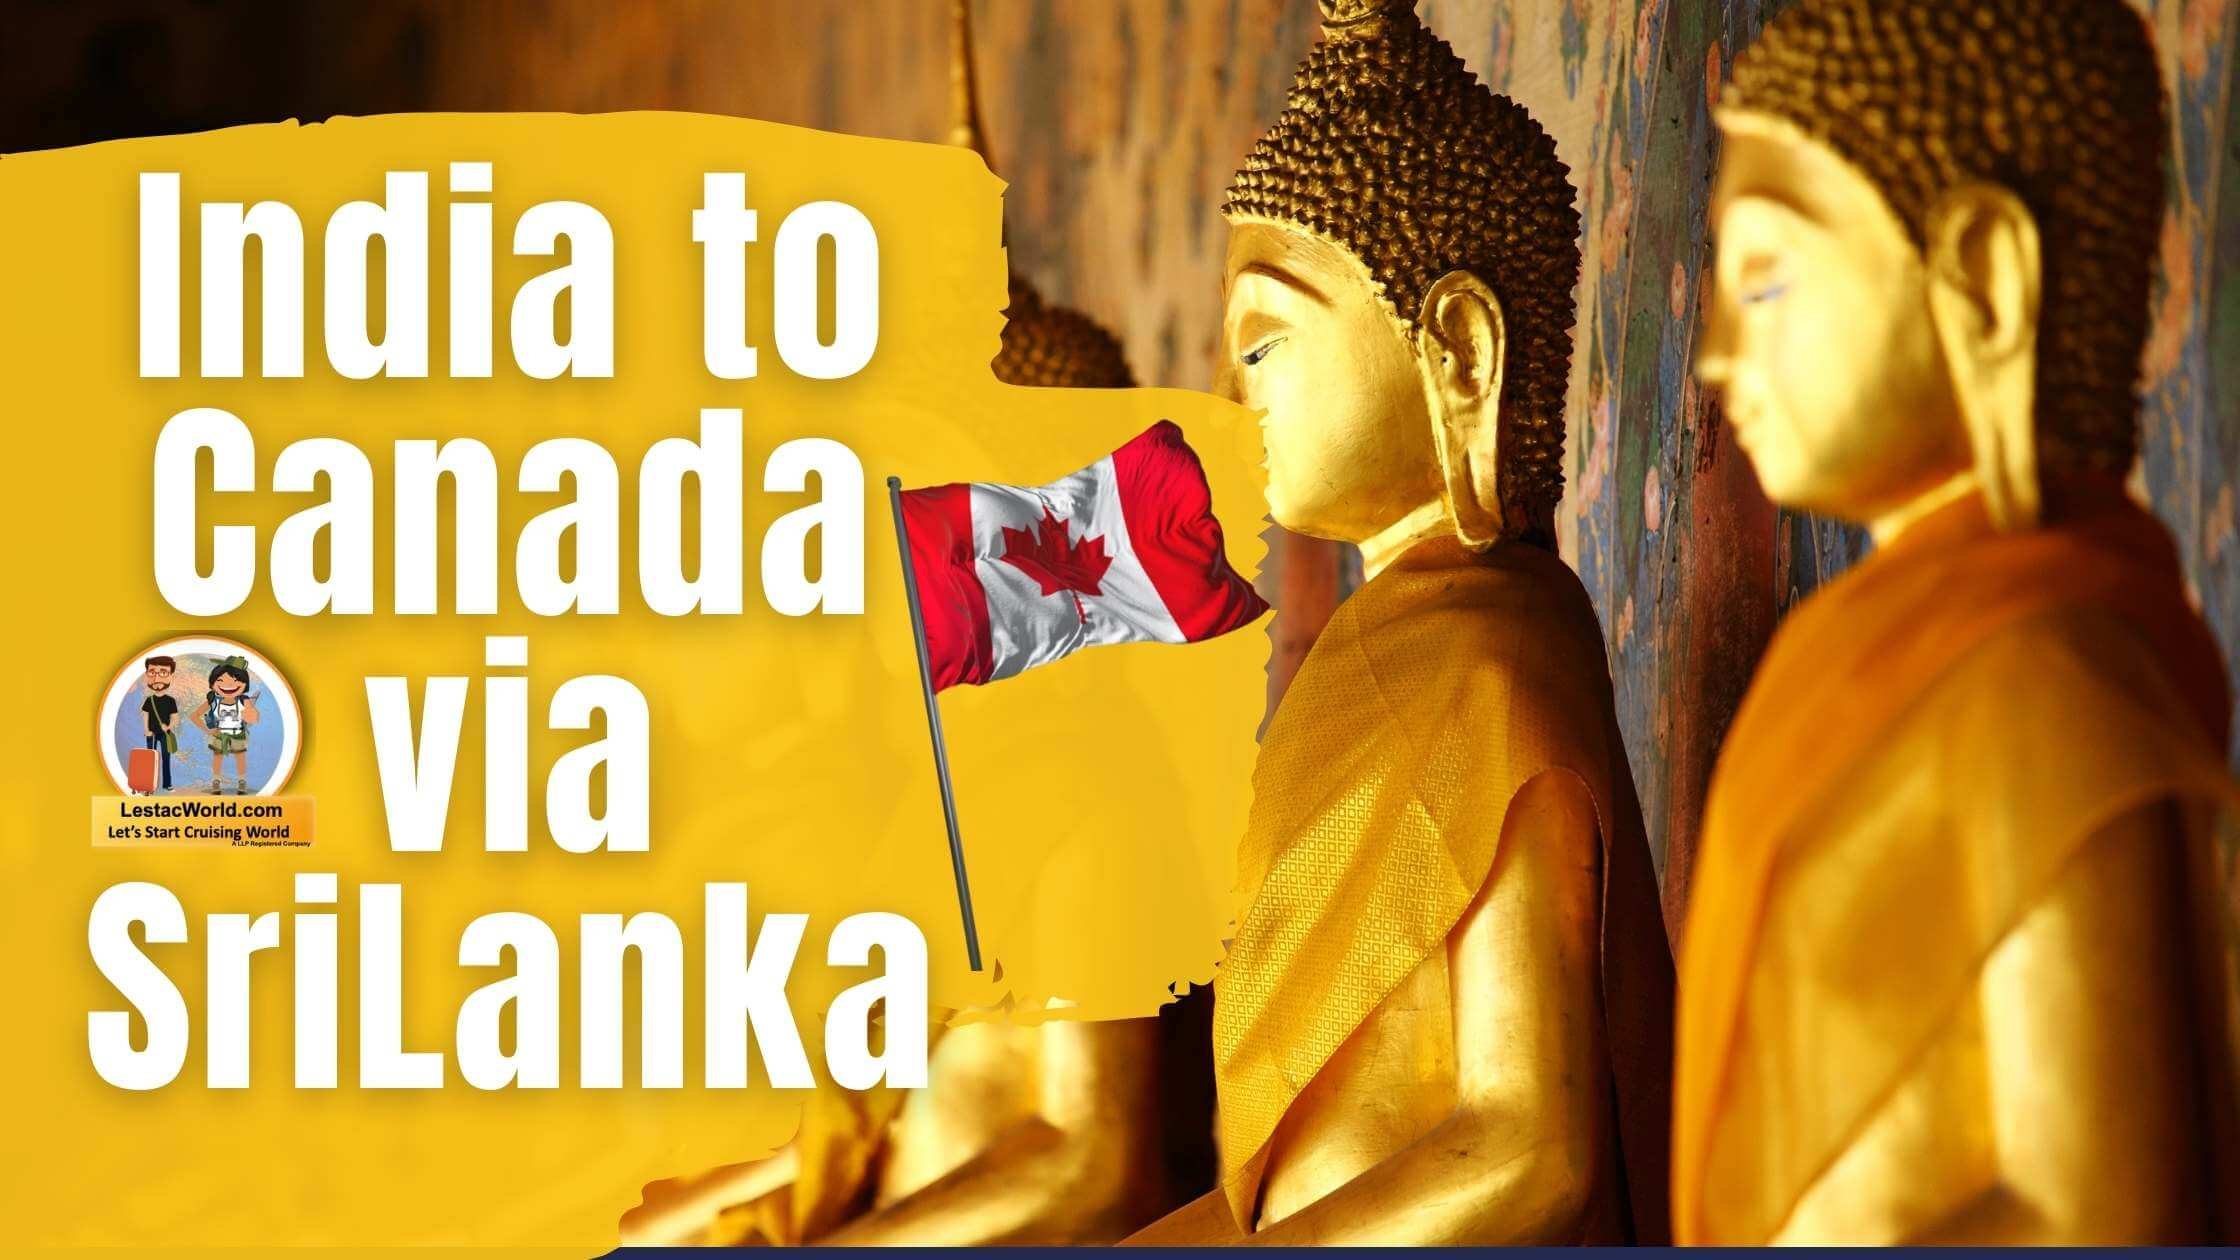 You are currently viewing India to Canada via Sri Lanka